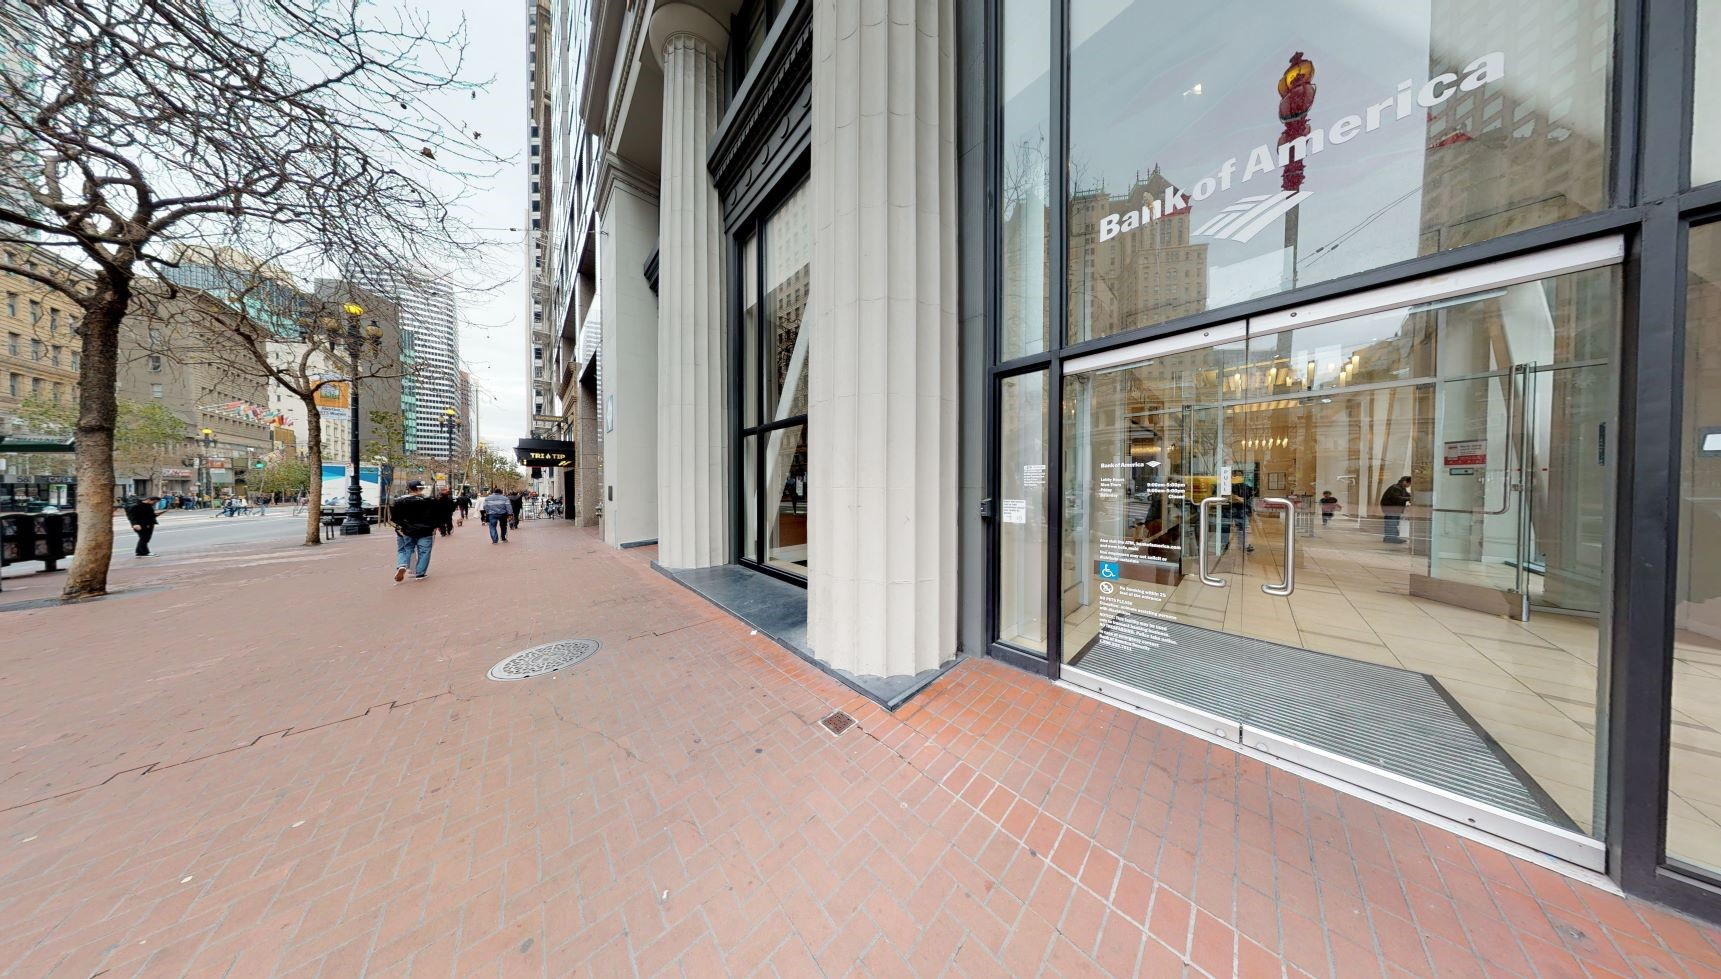 Bank of America financial center with walk-up ATM   33 New Montgomery St, San Francisco, CA 94105